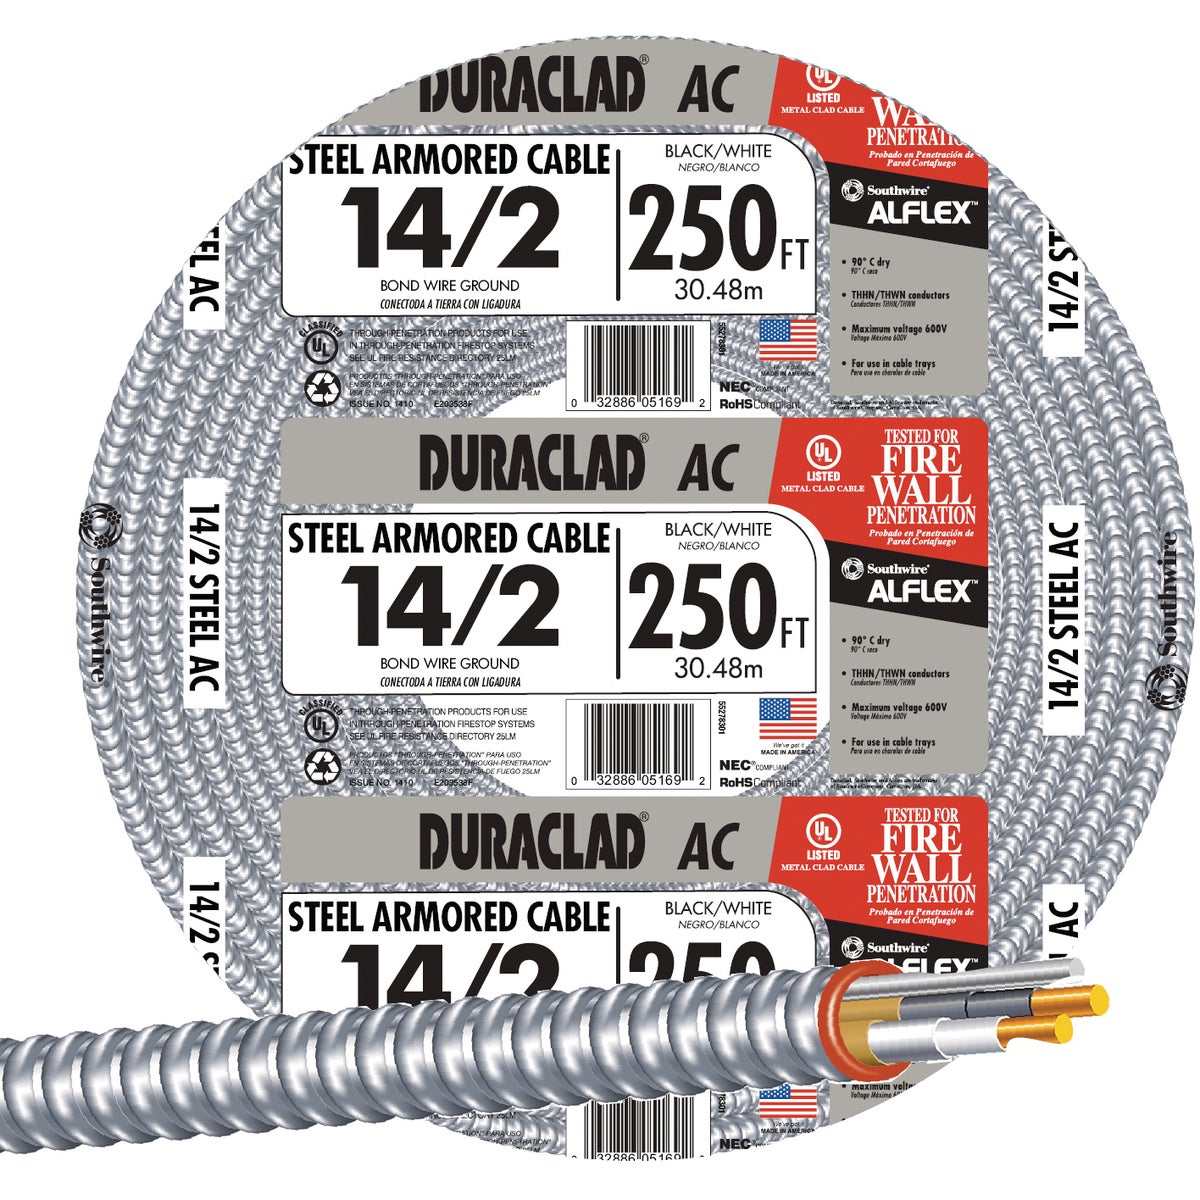 250' 14/2 STL ARMR CABLE - 55278301 by Southwire Company